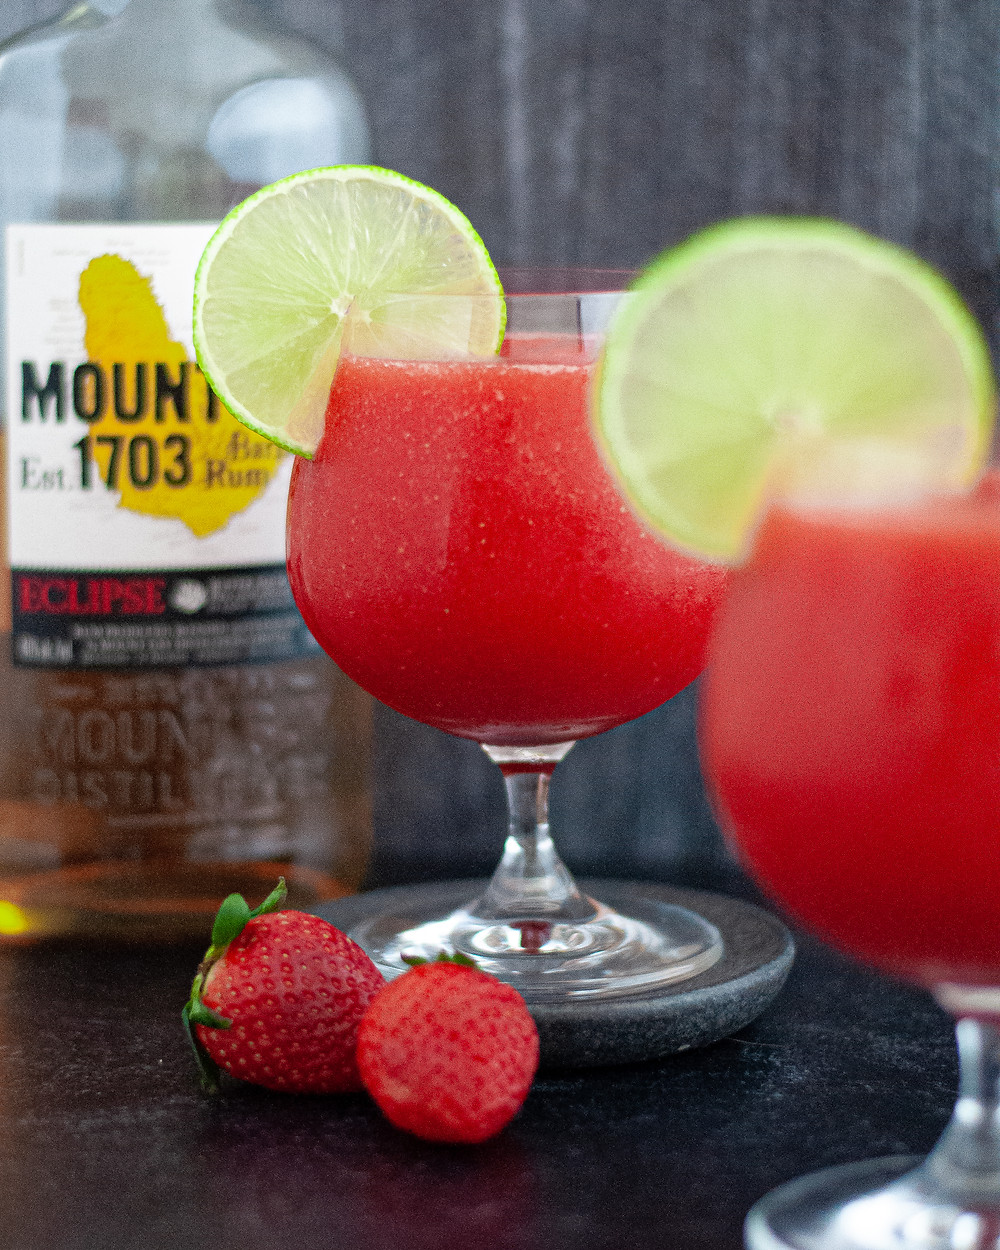 Two glasses of this Frozen Strawberry Daiquiri Recipe served with slices of lime, showcasing the daiquiri ingredients of rum, strawberries, and limes.